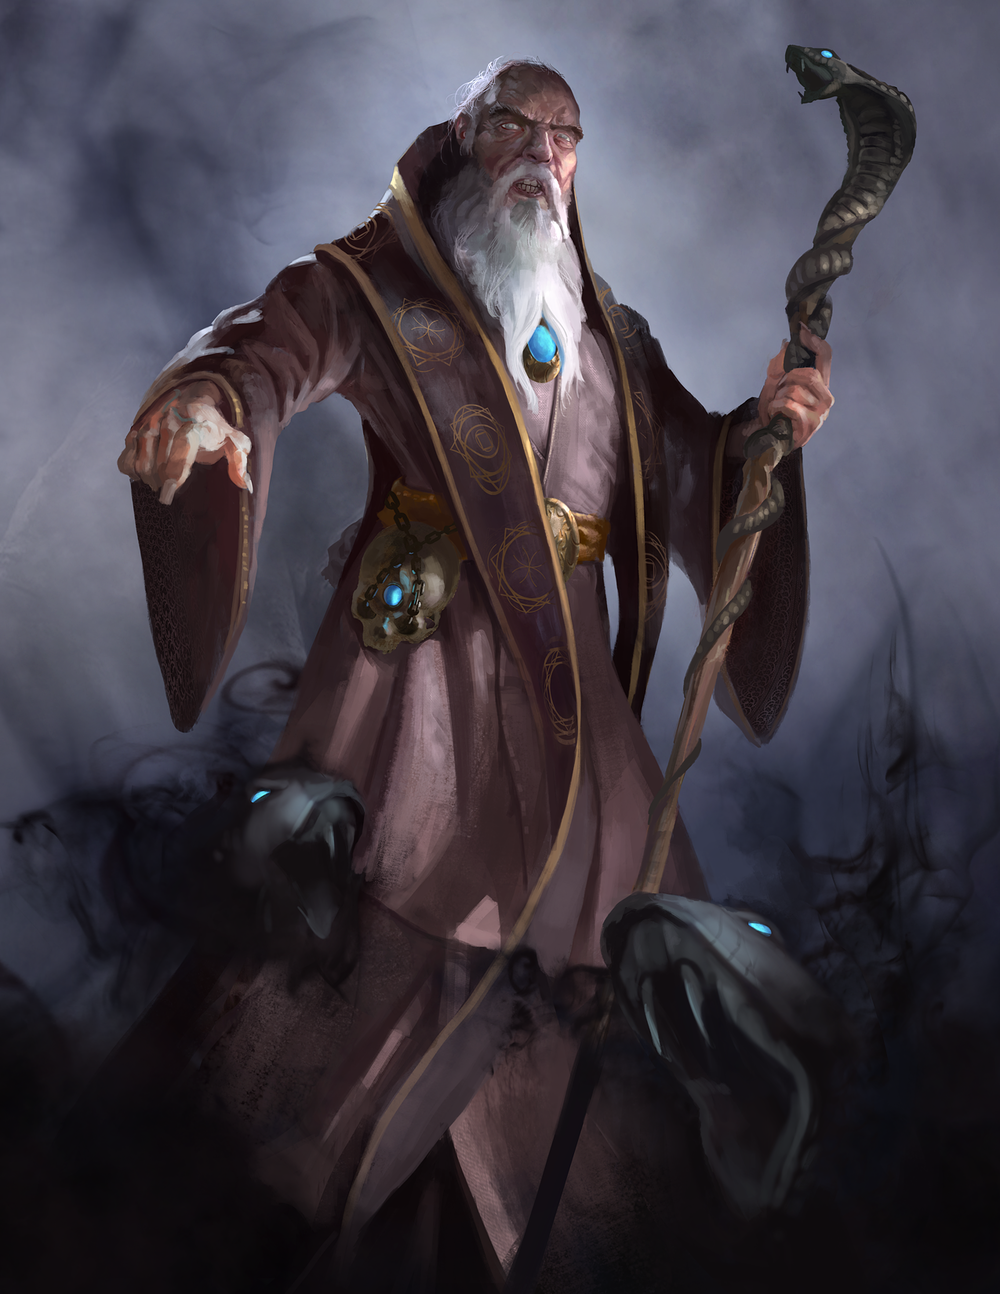 http://www.woinrpg.com/npcs/archmage